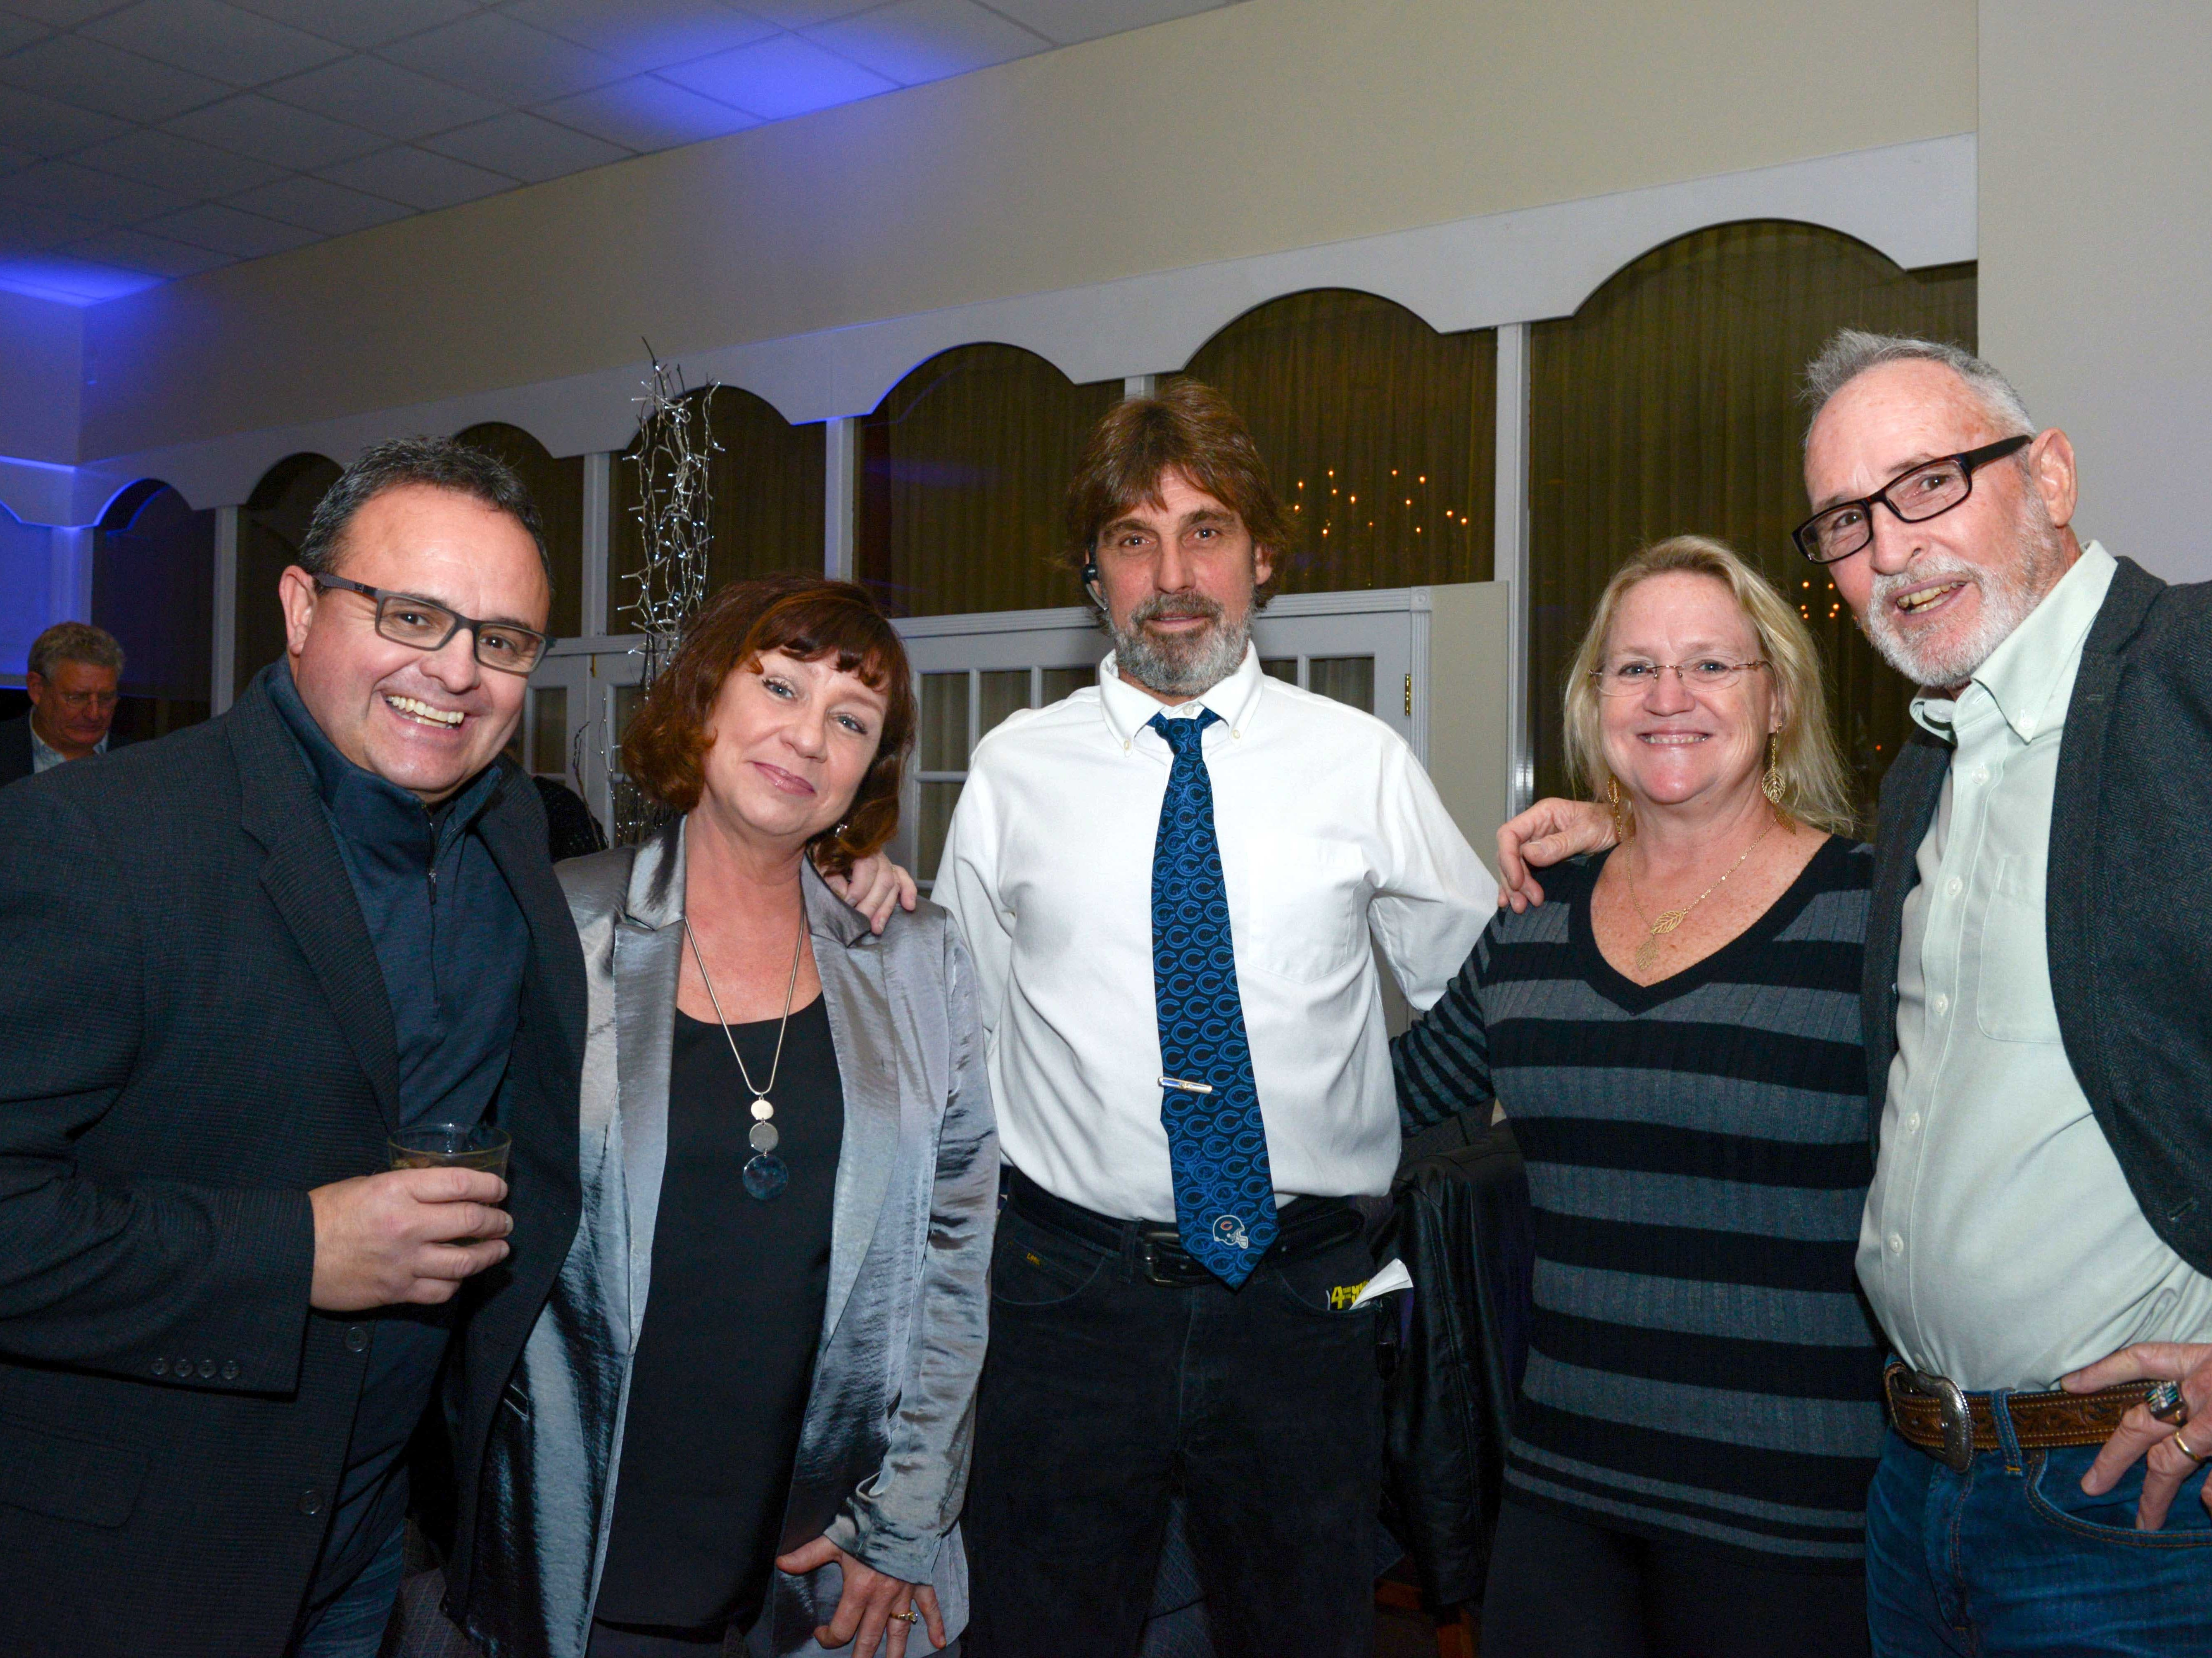 Dominick and Kate Alvira, Kurt and Cindy Blomquist and Timothy Cartwright at Family Meals' Black Tie, Blue Jeans & Bingo fundraiser in Fort Pierce.